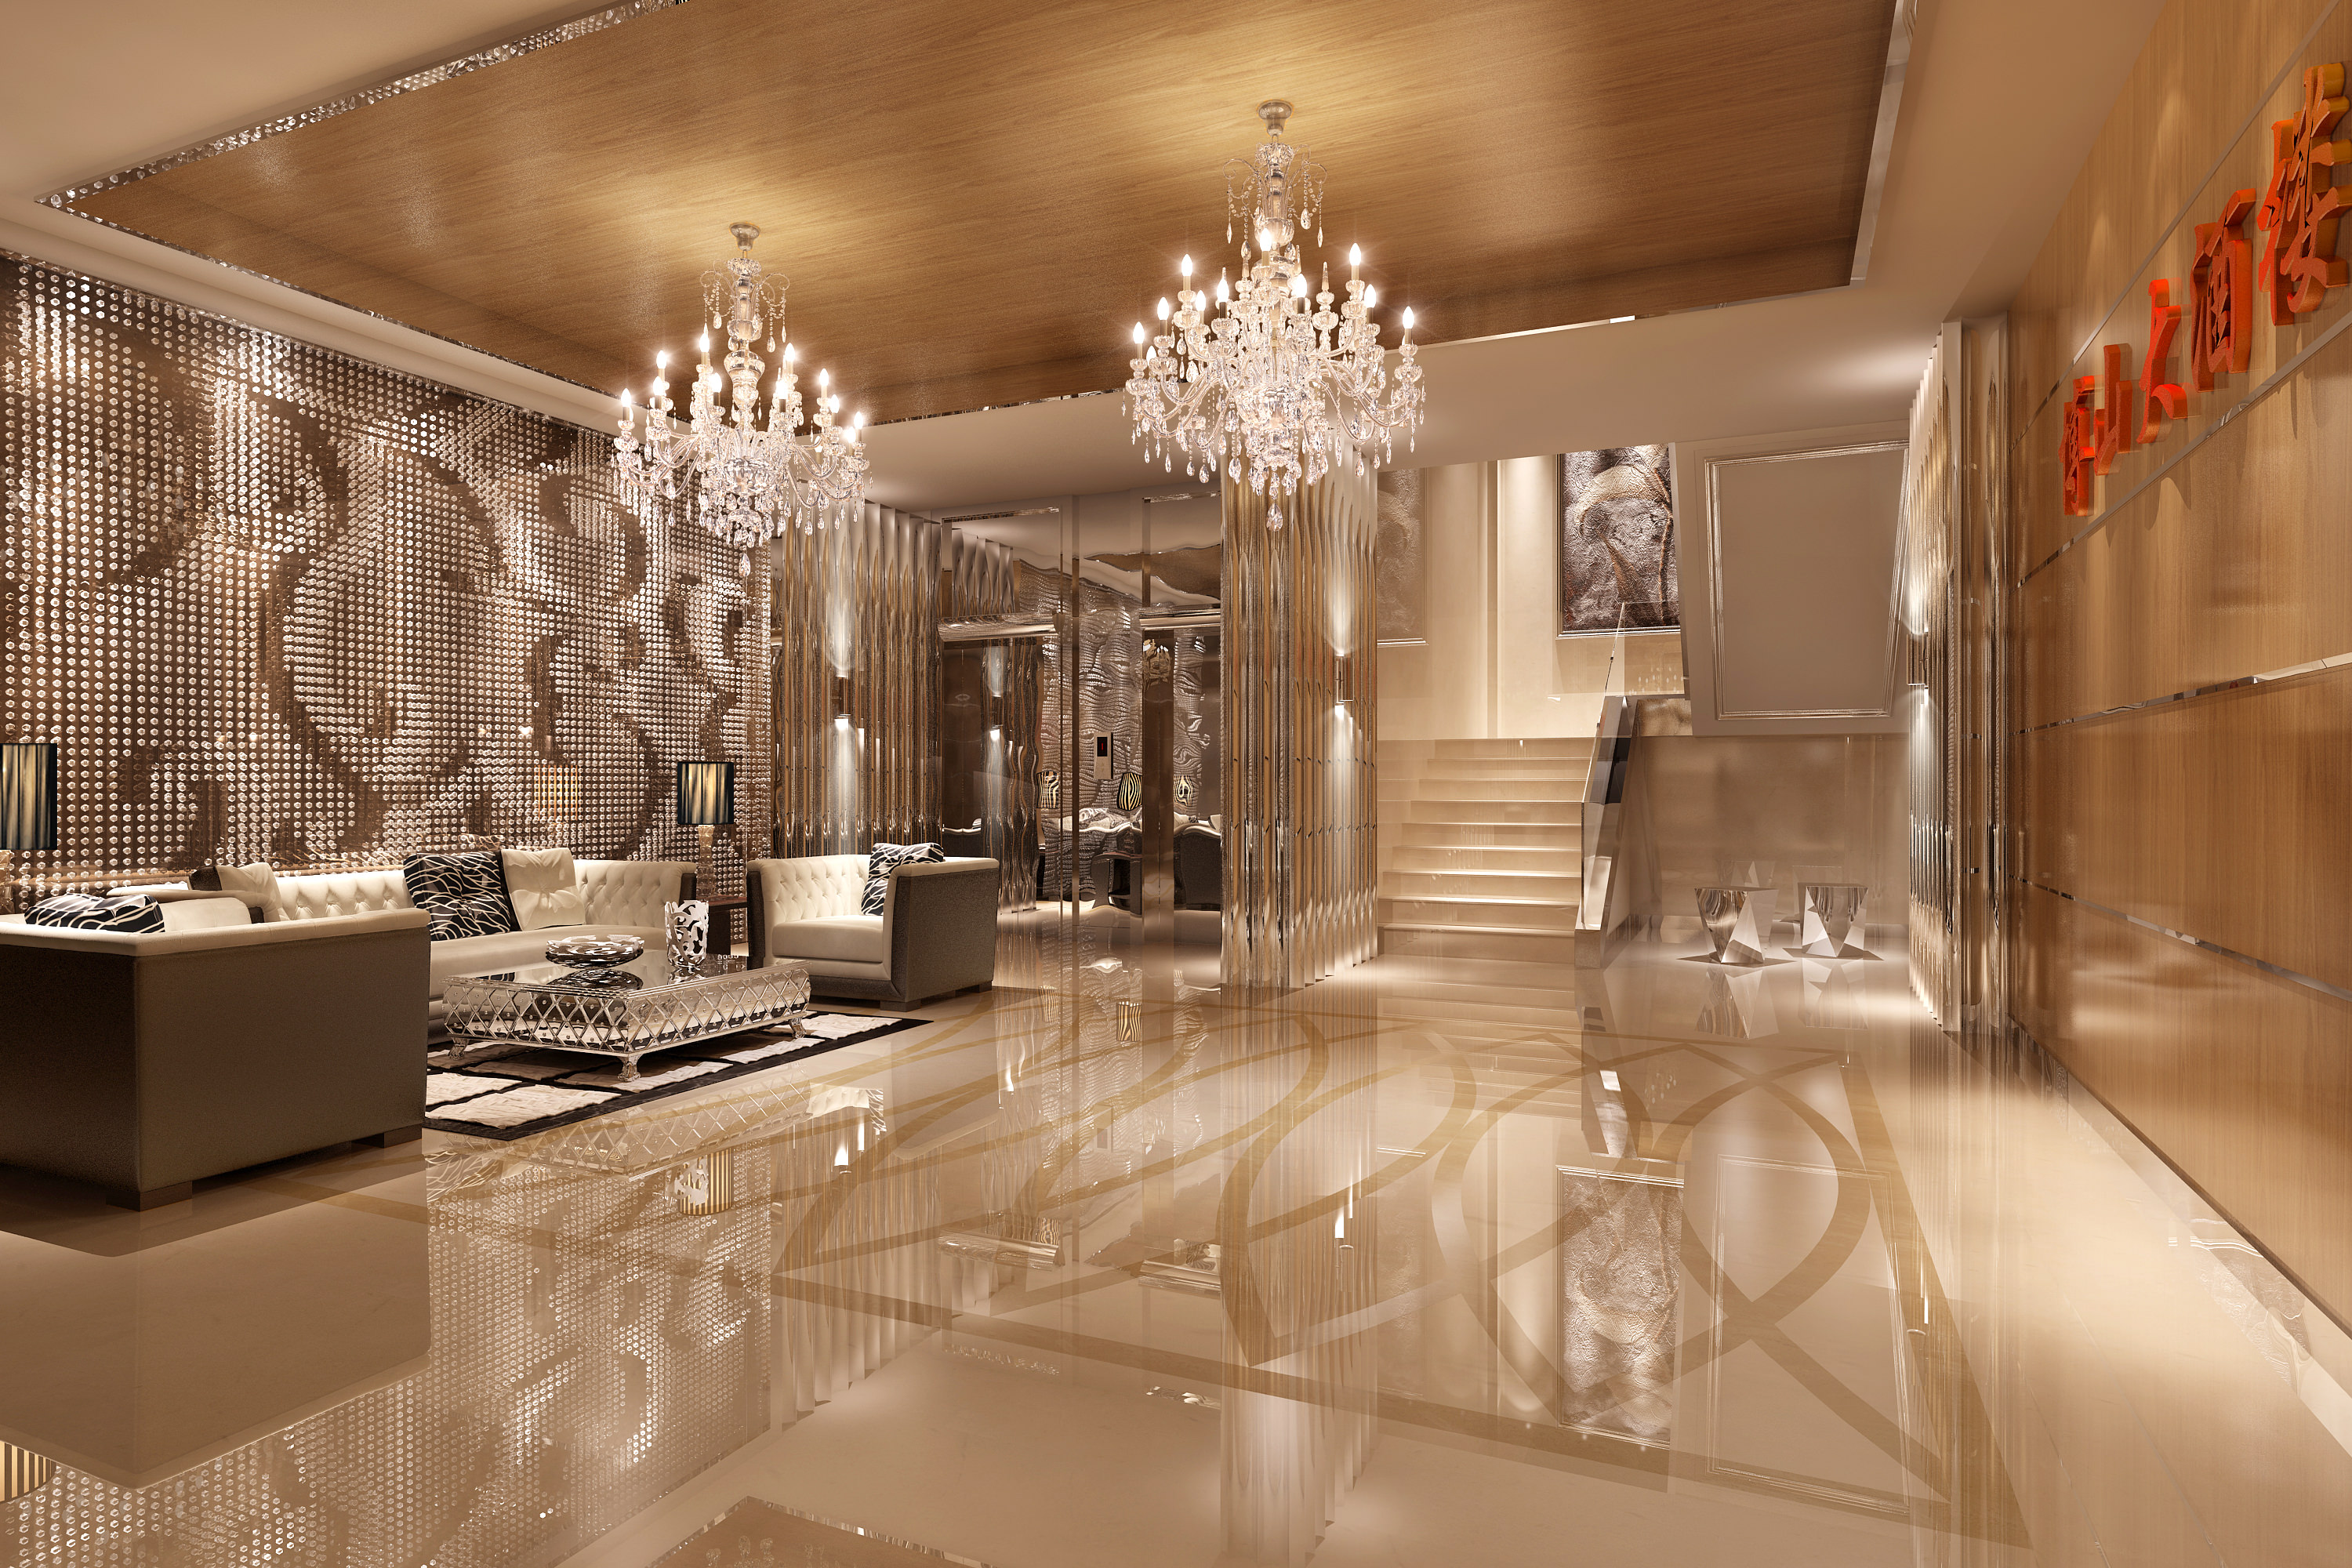 Luxury lobby 3d model max for Decor 3d model